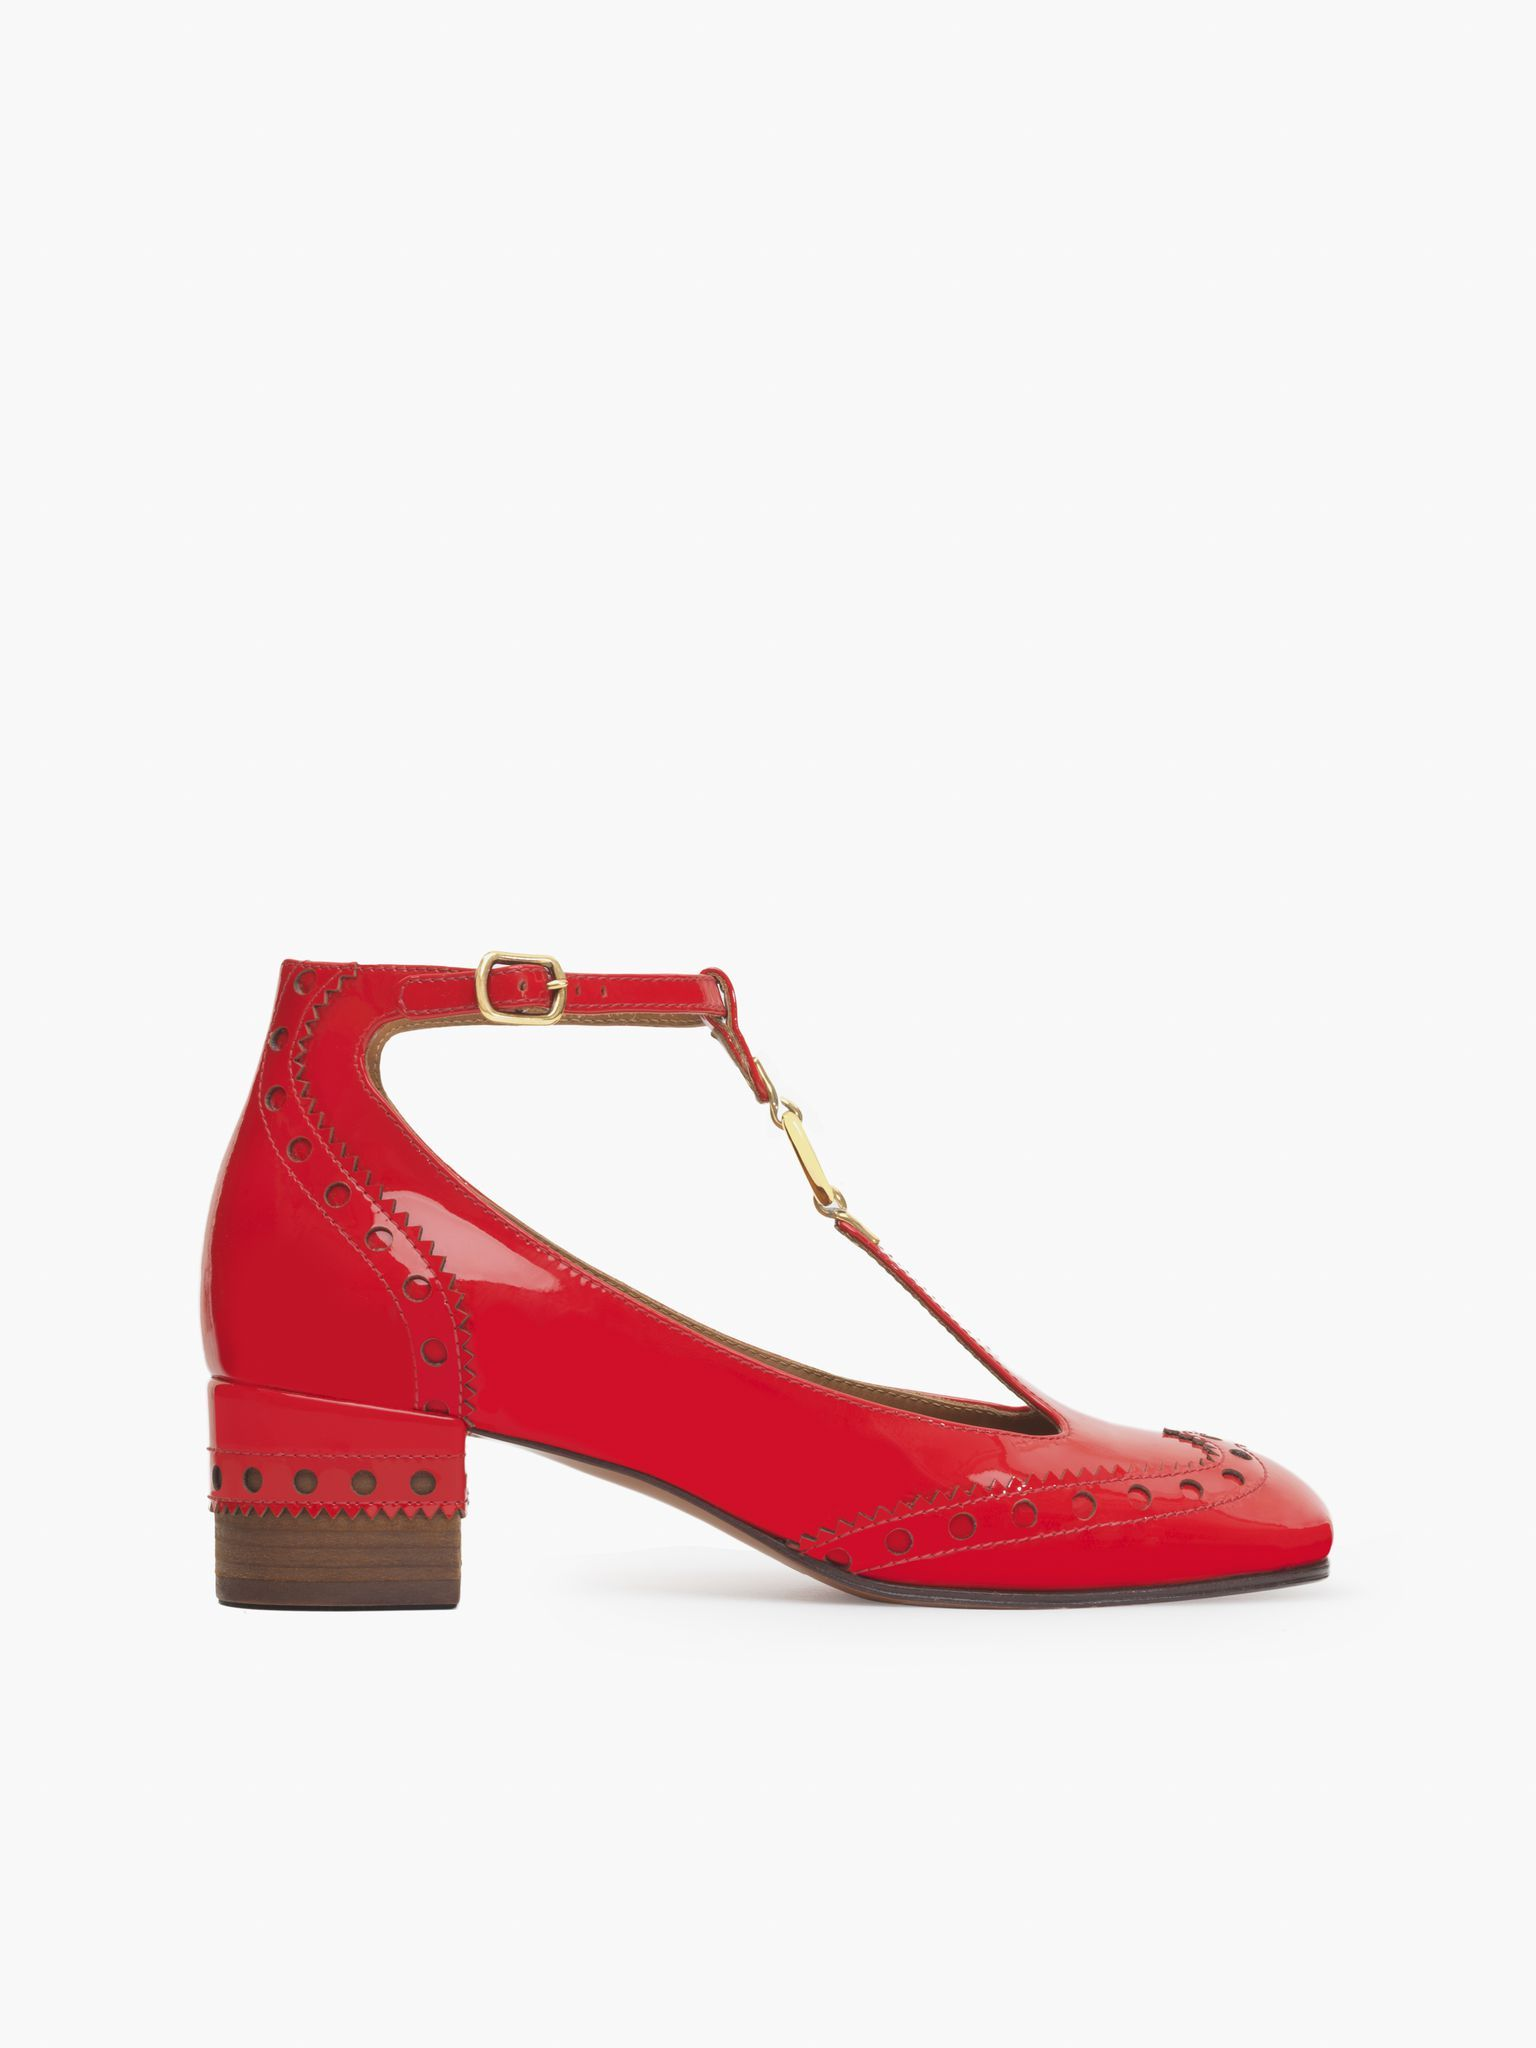 Chloé Perry T-bar Sandales Plates - Rouge O2HqKbiyPp